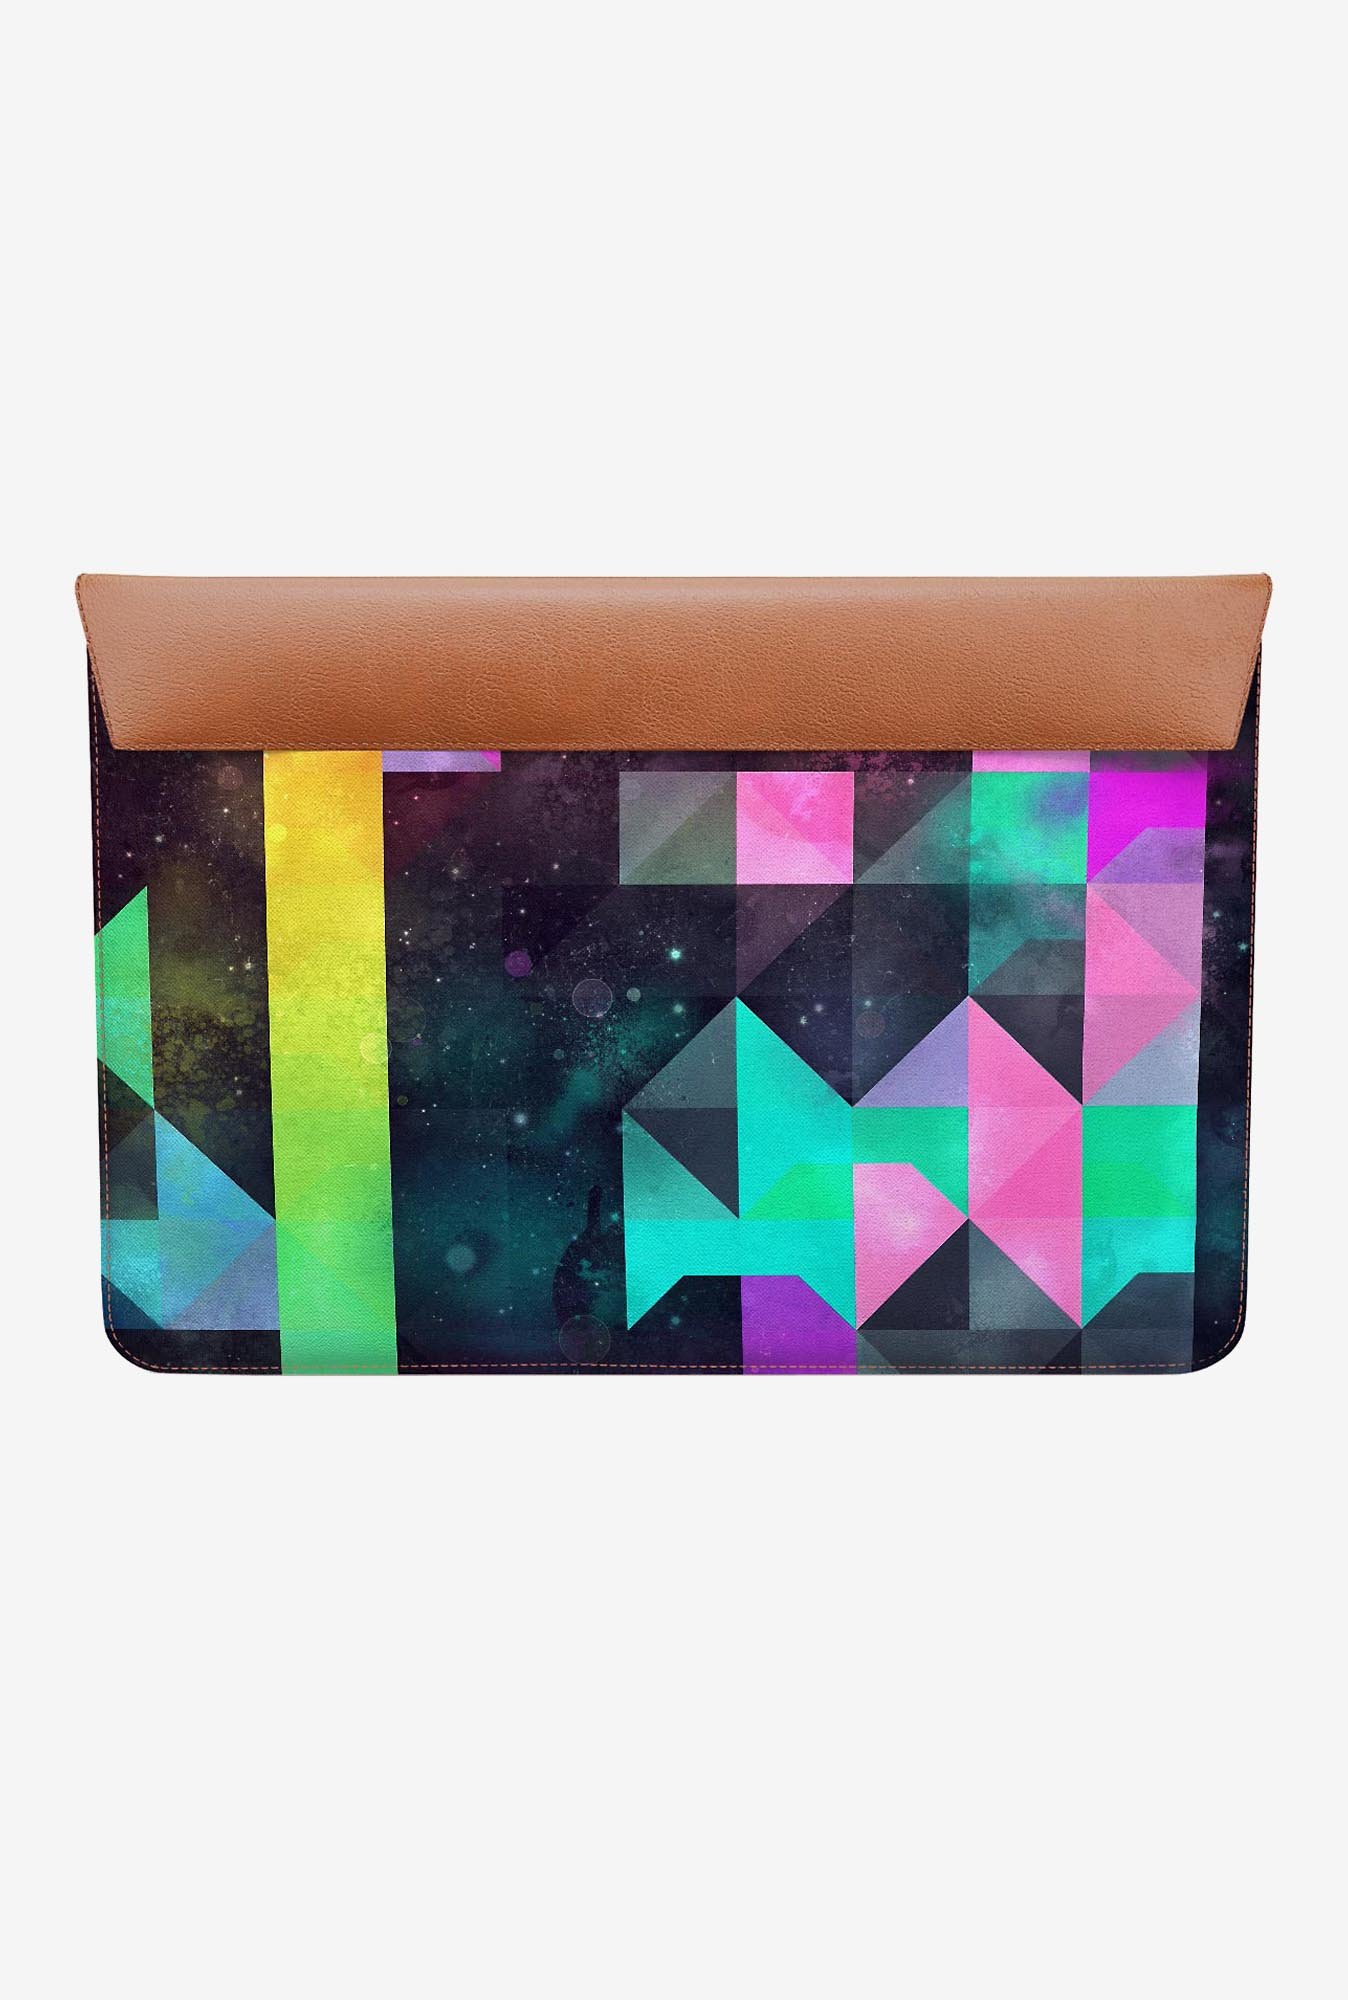 "DailyObjects Hyppy Rysylyxxn Macbook Air 11"" Envelope Sleeve"